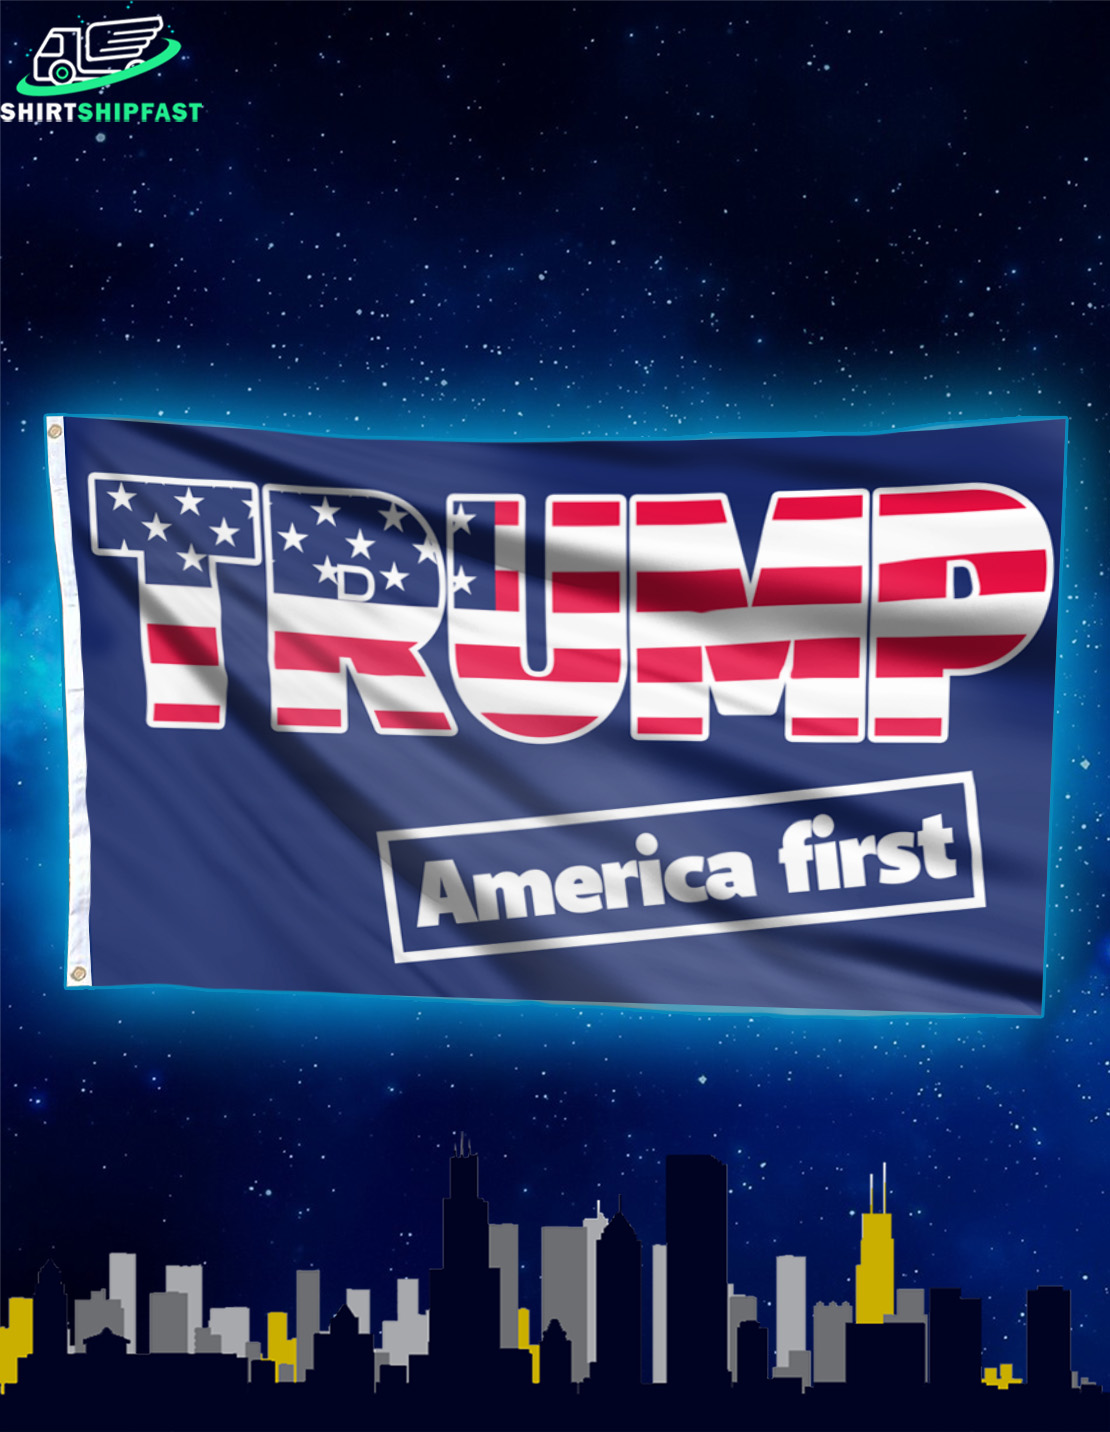 Trump America first flag - Picture 2